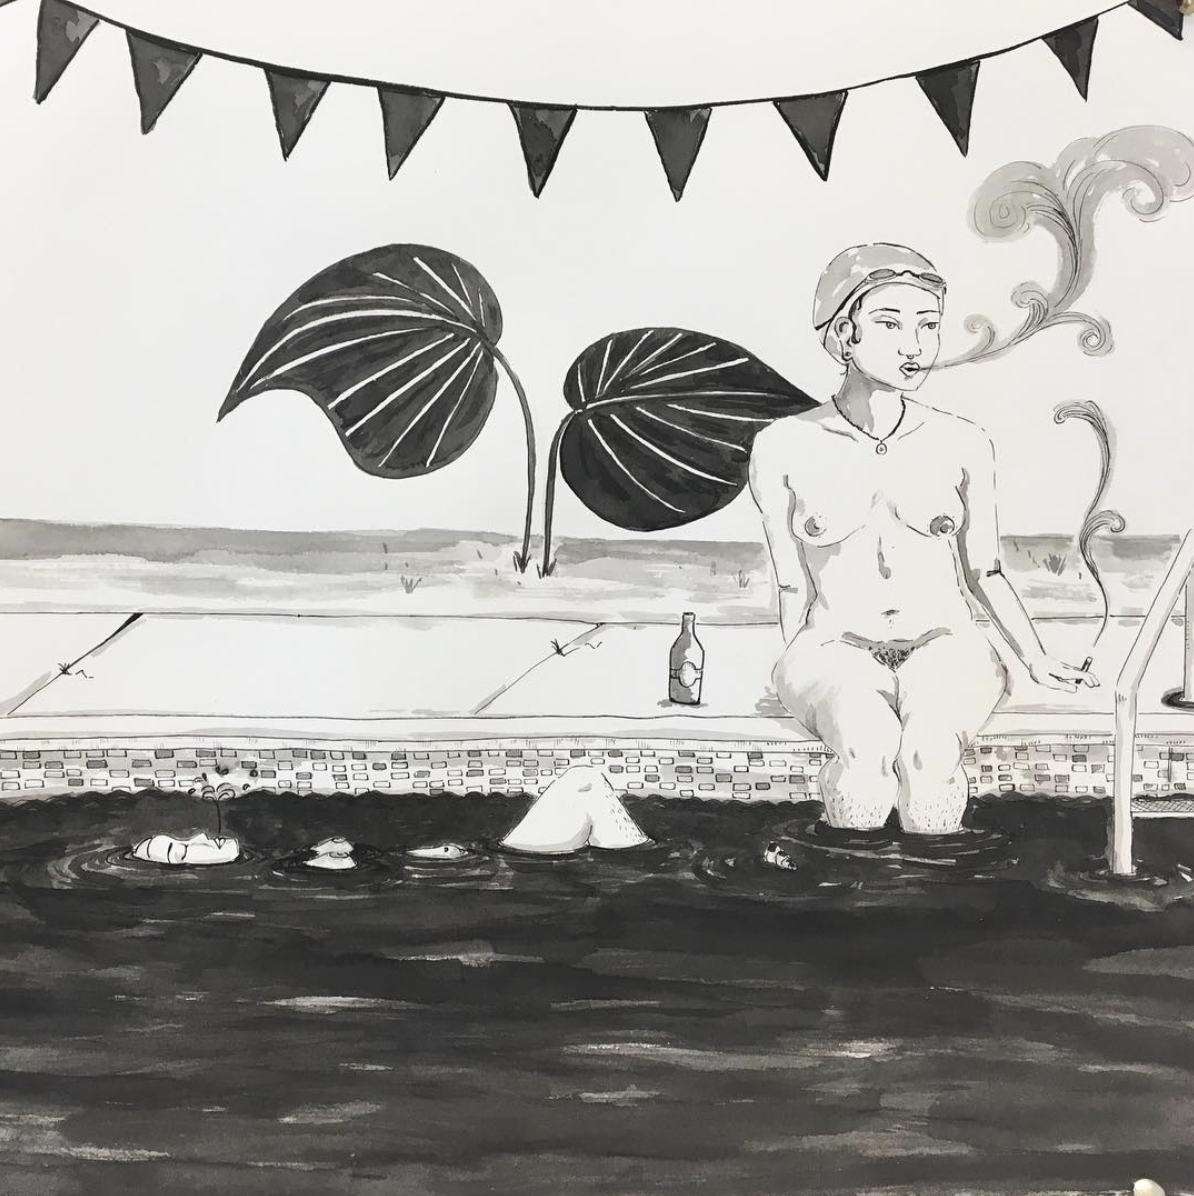 Pictured: Crystal Bi's illustration using pen and ink from her instagram @crystalbi_b    A person sitting on the pool smoking from a cigarette